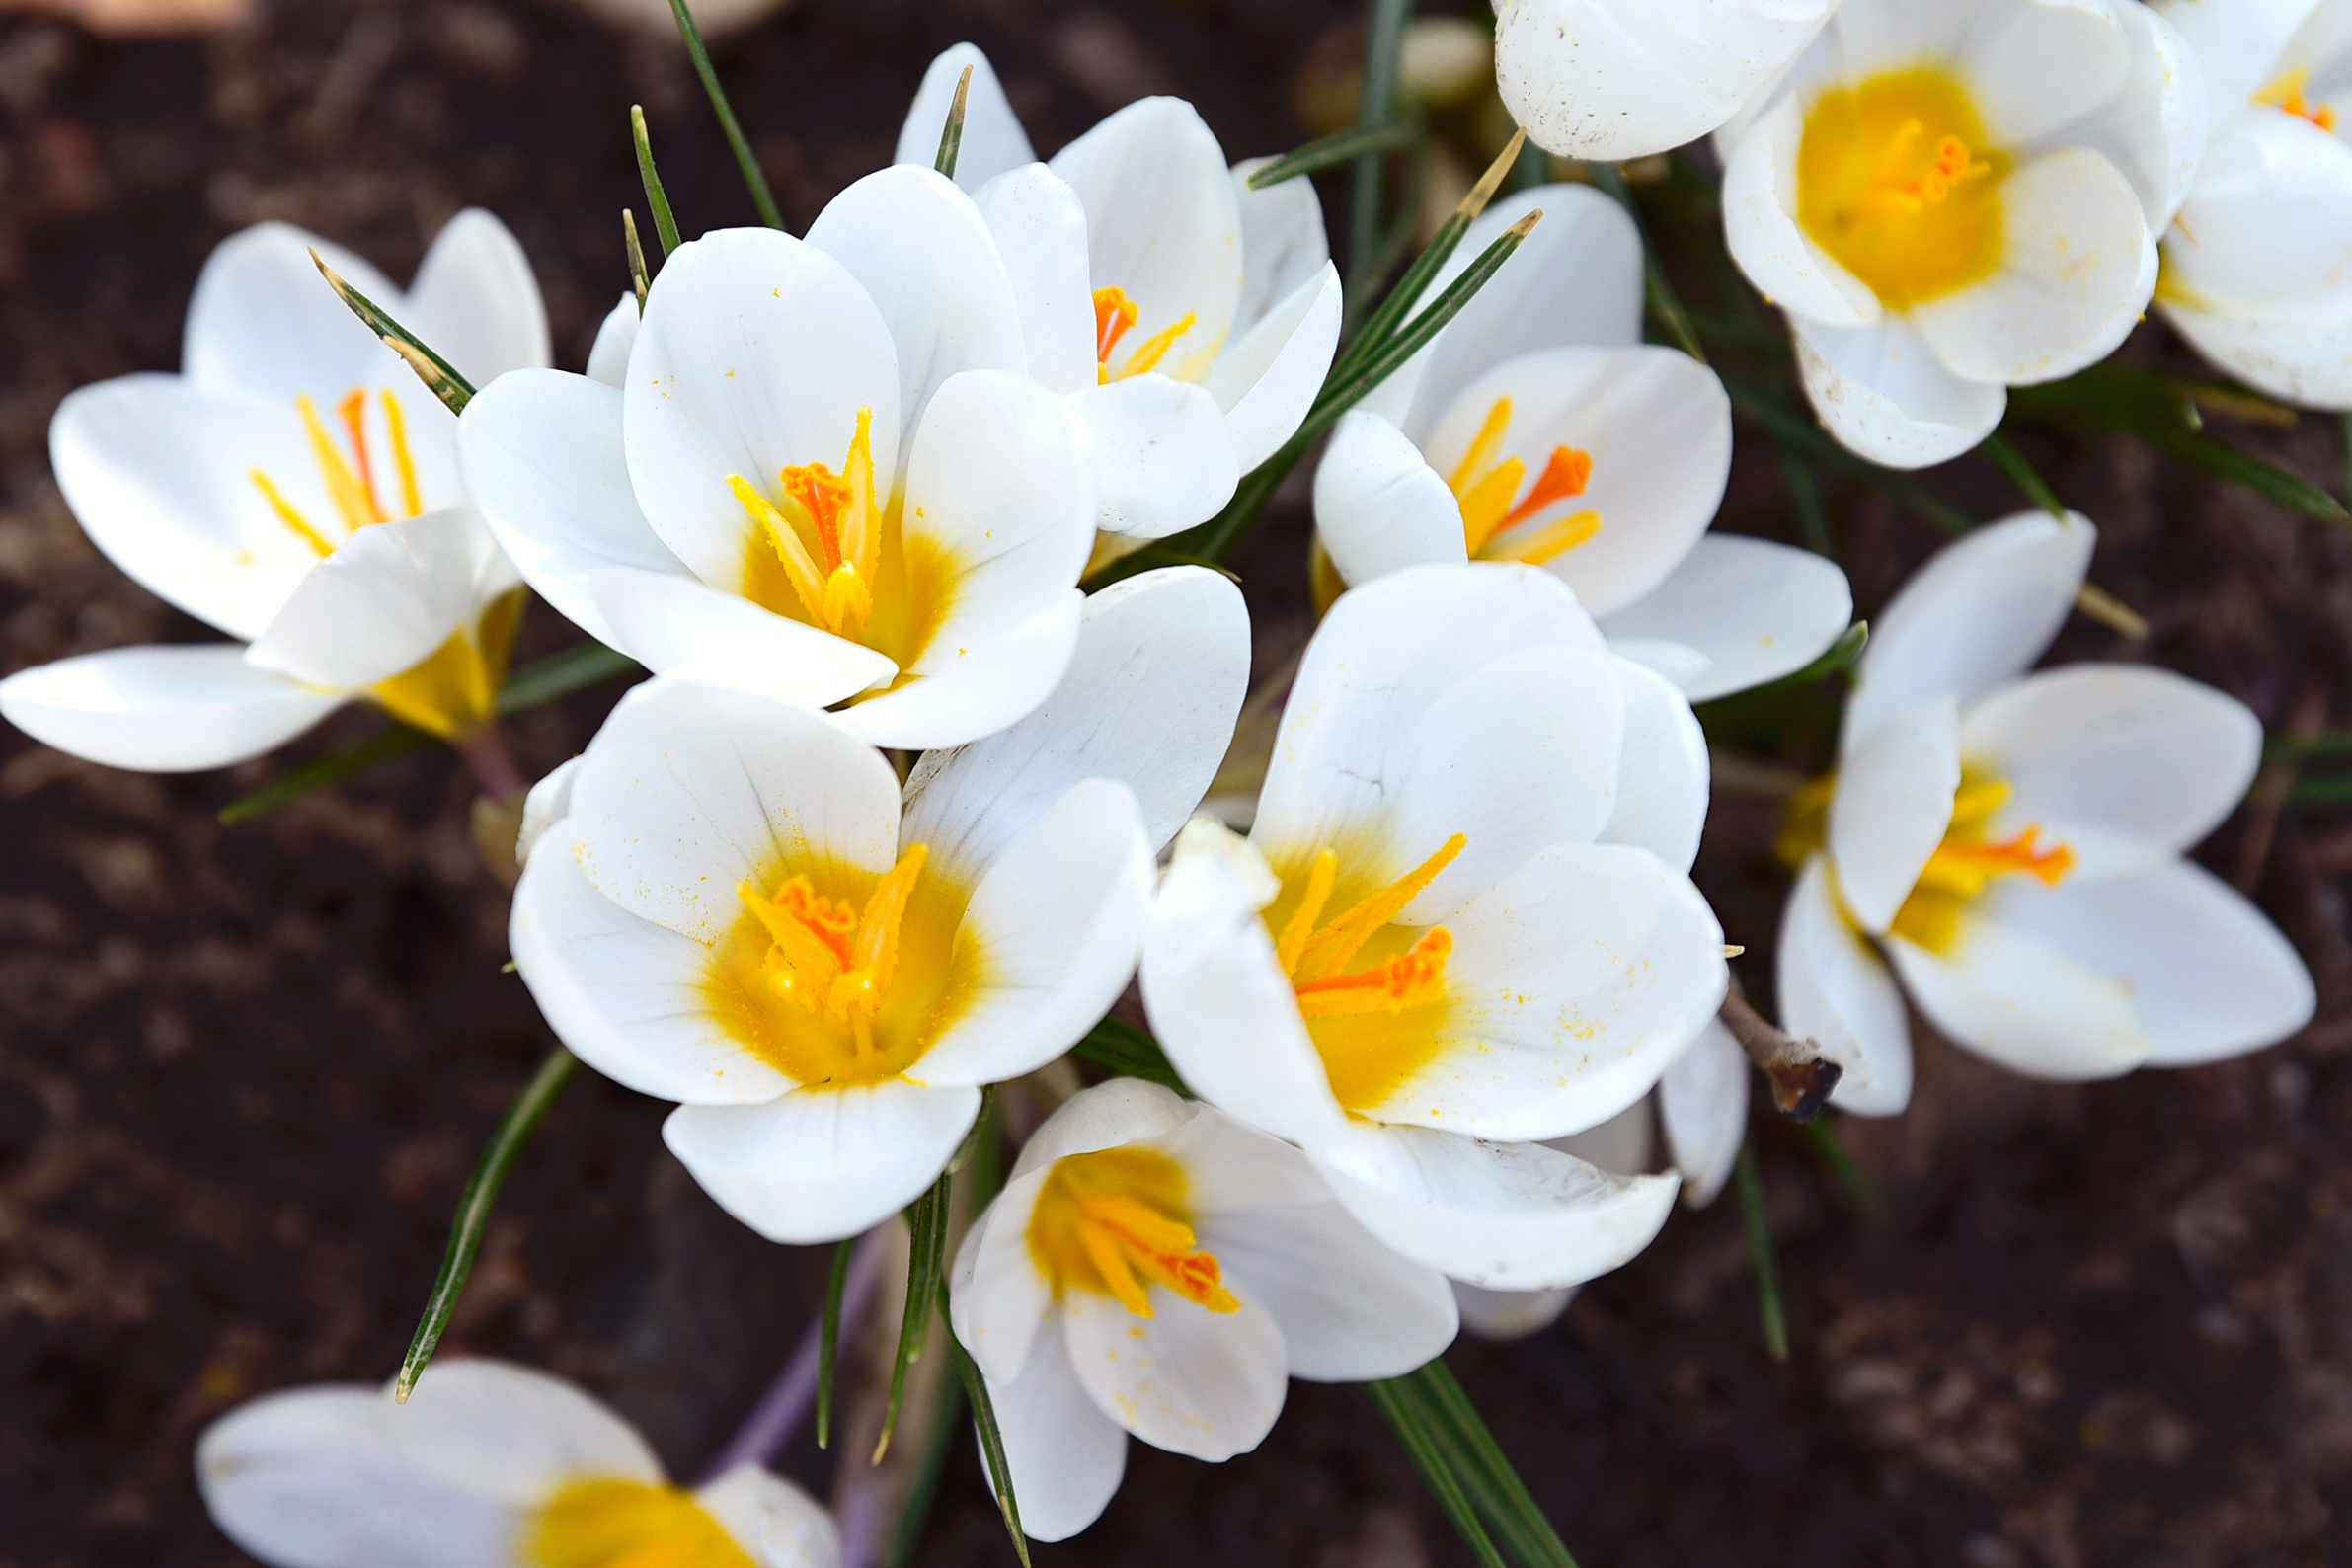 'Ard Schenk' crocus flowers with white petals and yellow centers closeup